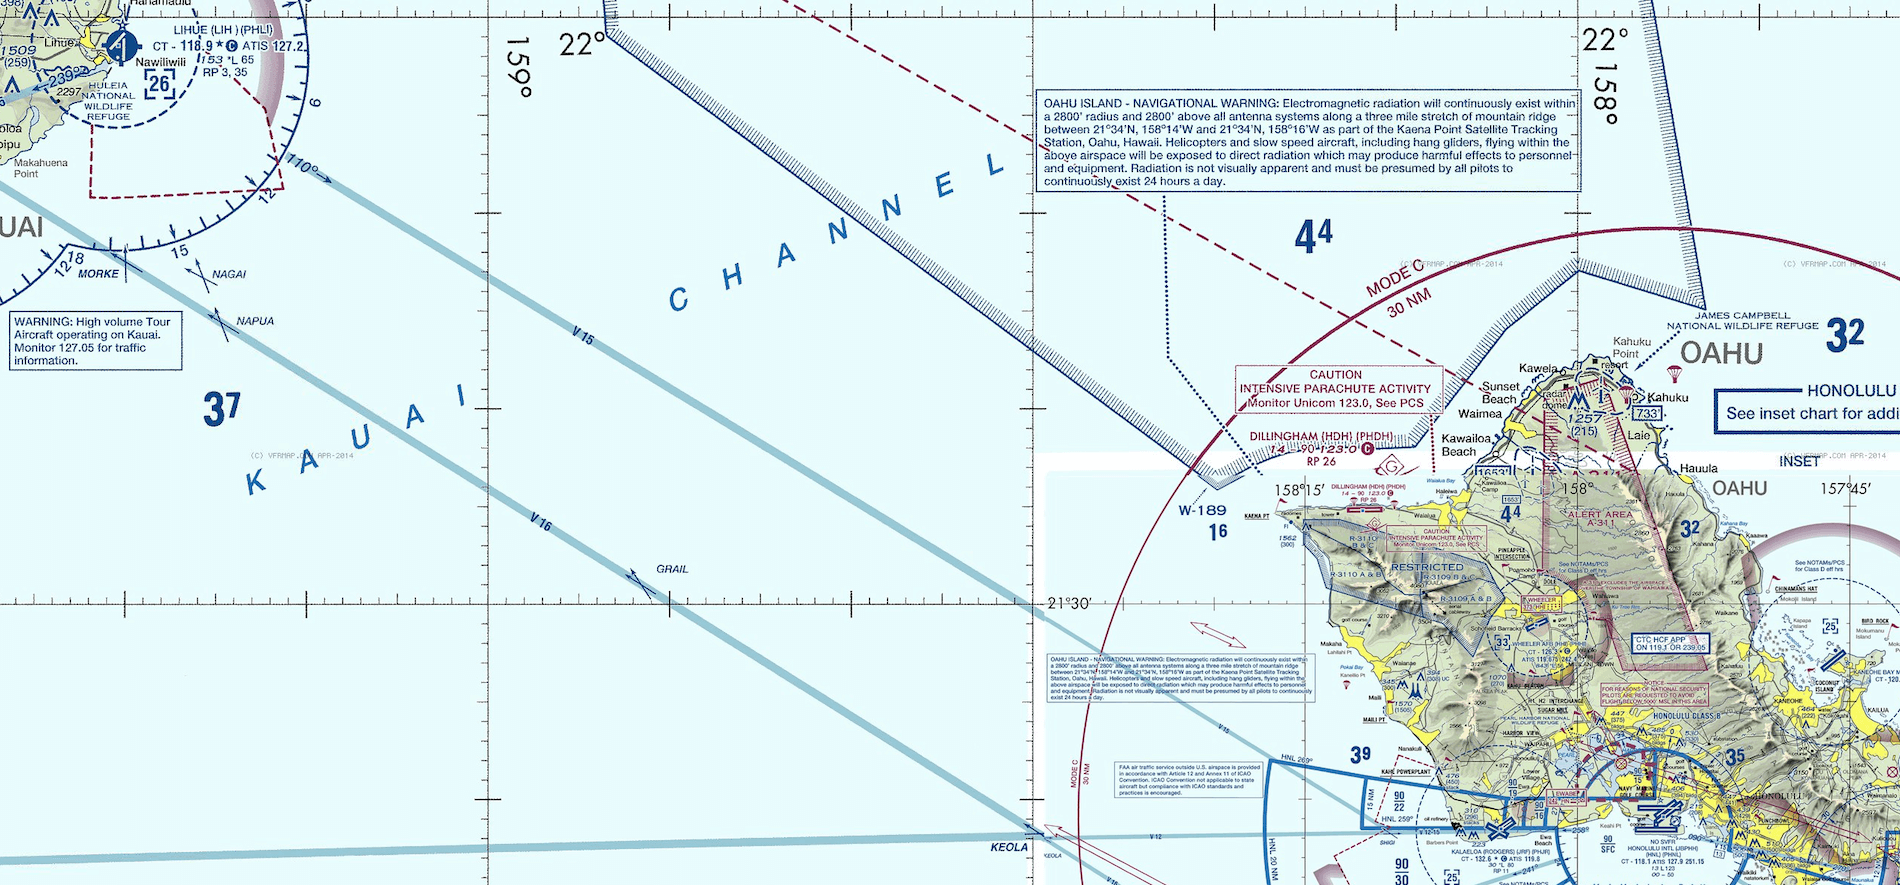 Naps hawaiian island hopping part i x plained the source for after takeoff my intention is to fly a more or less straight line to honolulu international airport pooptronica Choice Image